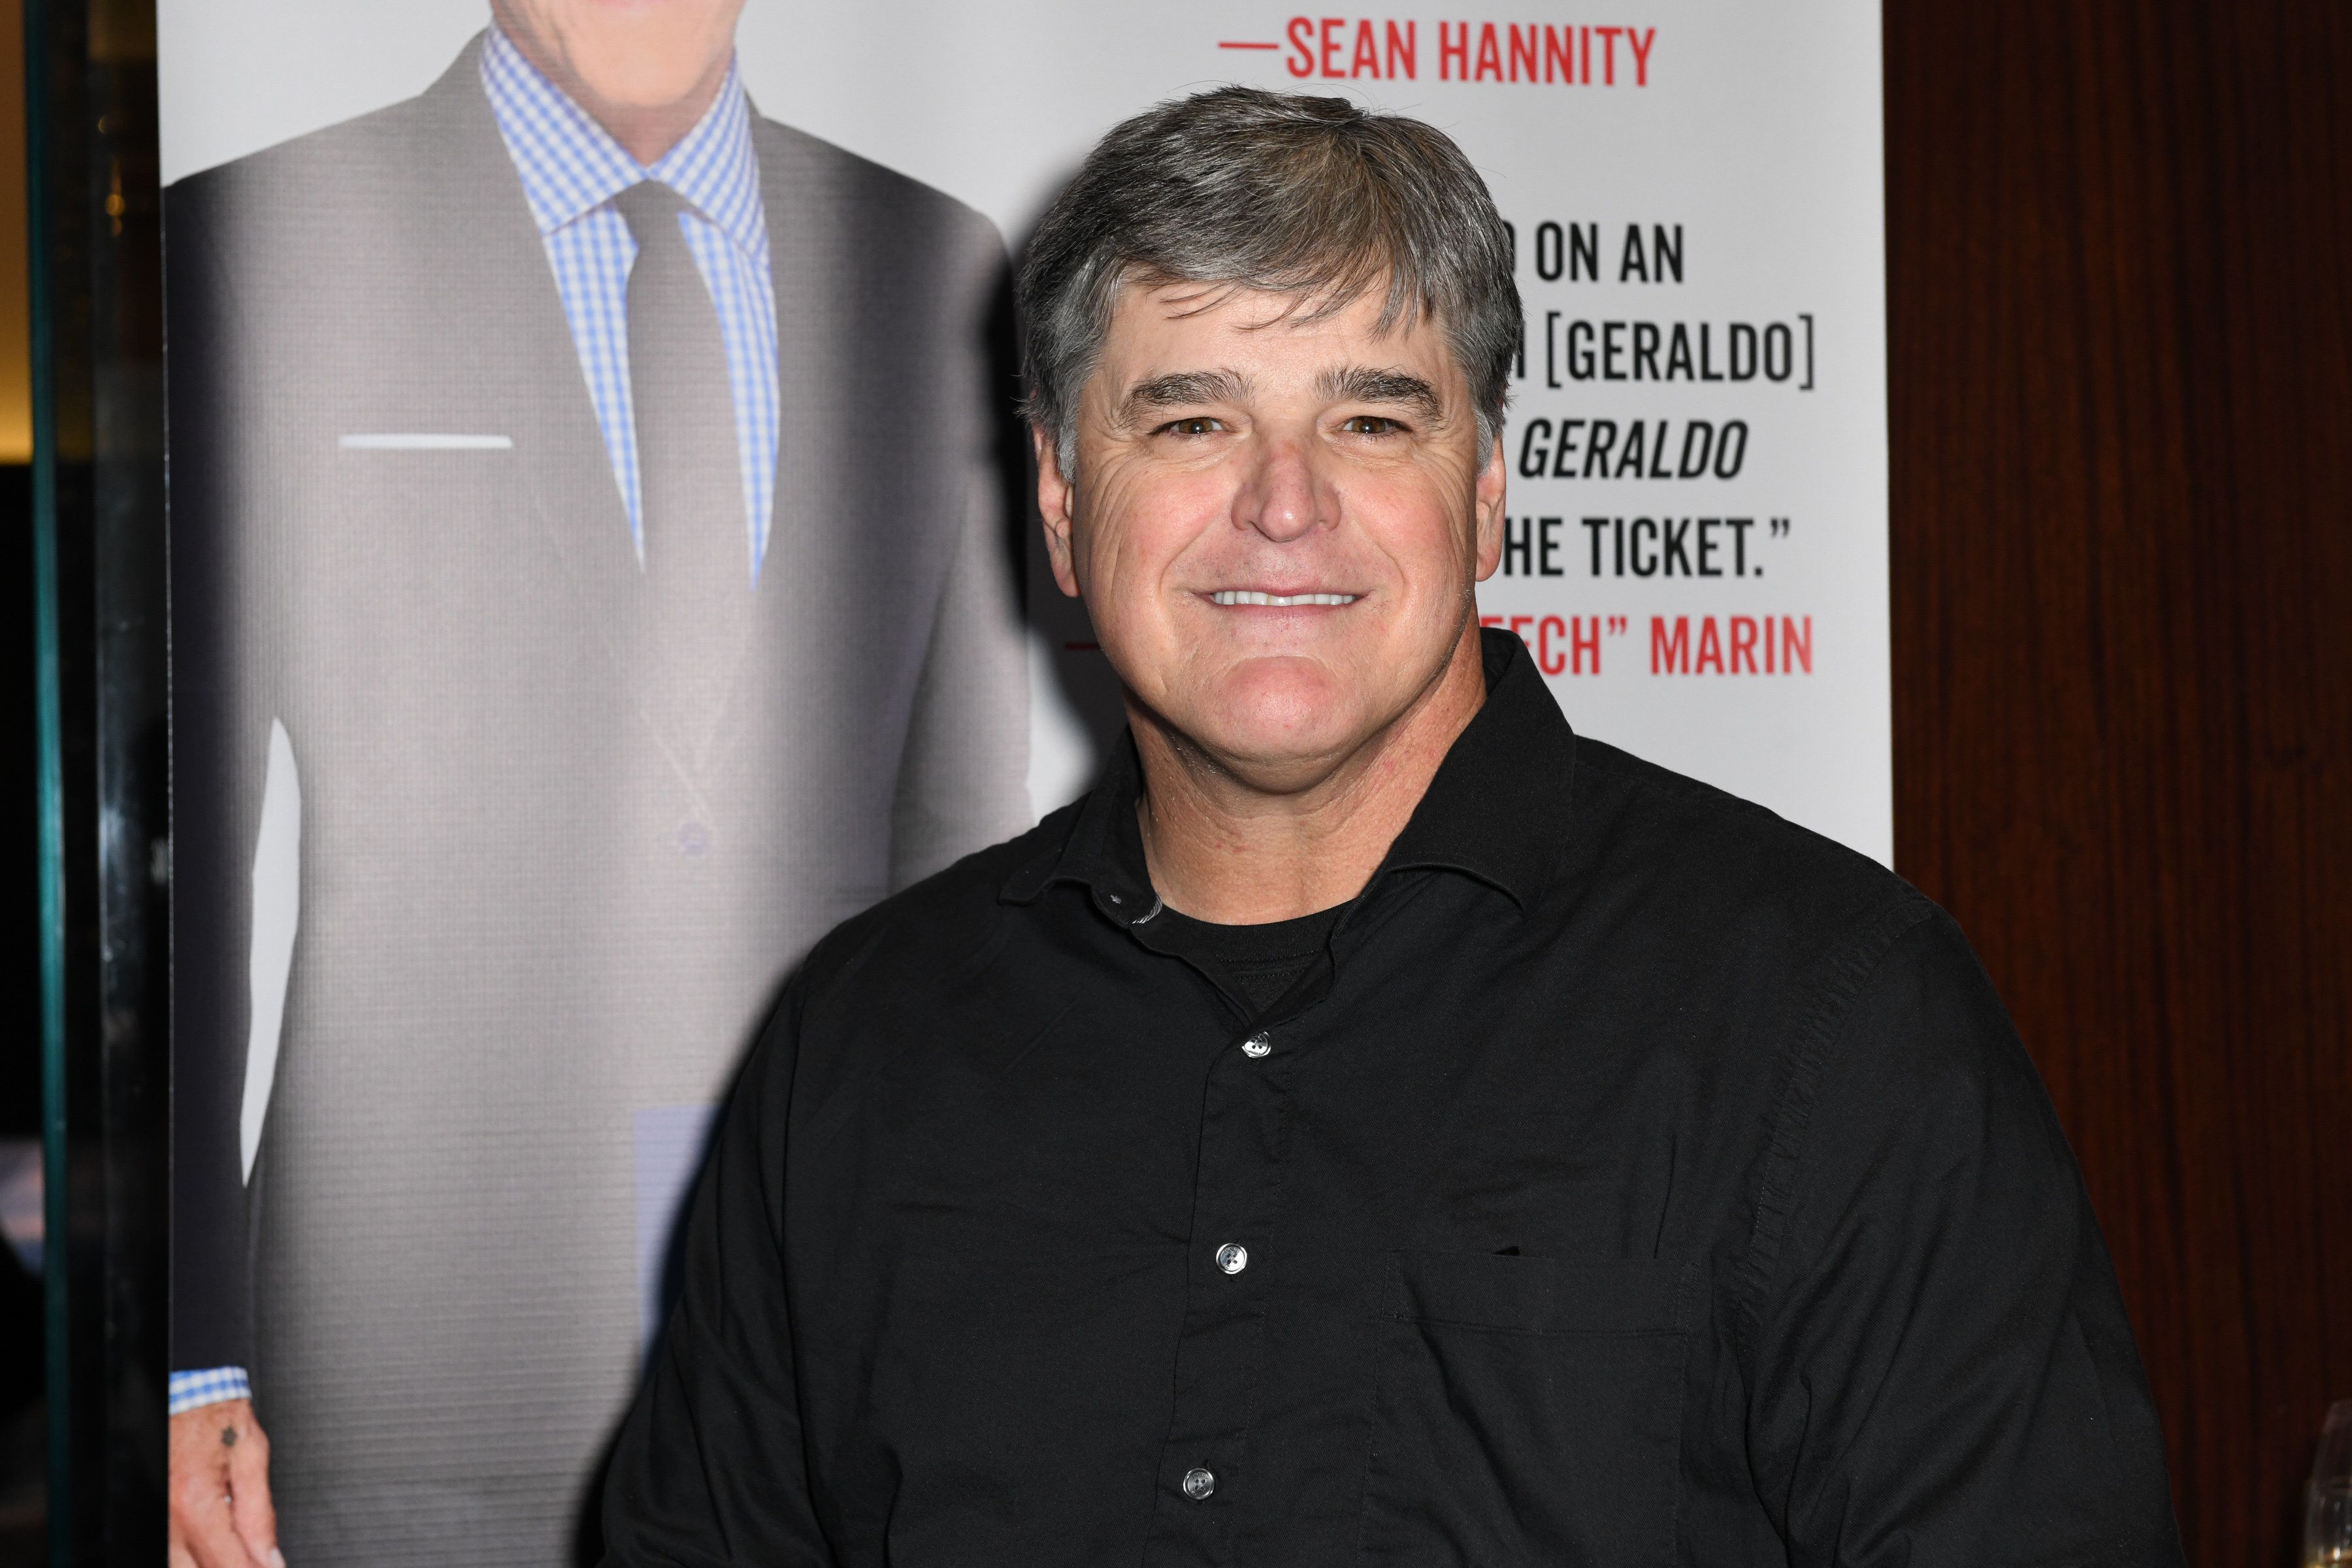 NEW YORK, NY - APRIL 02:  Sean Hannity  attends Sean Hannity & Friends celebrate the publication of 'The Geraldo Show: A Memoir' by Geraldo Rivera at Del Frisco's on April 2, 2018 in New York City.  (Photo by Jared Siskin/Patrick McMullan via Getty Images)